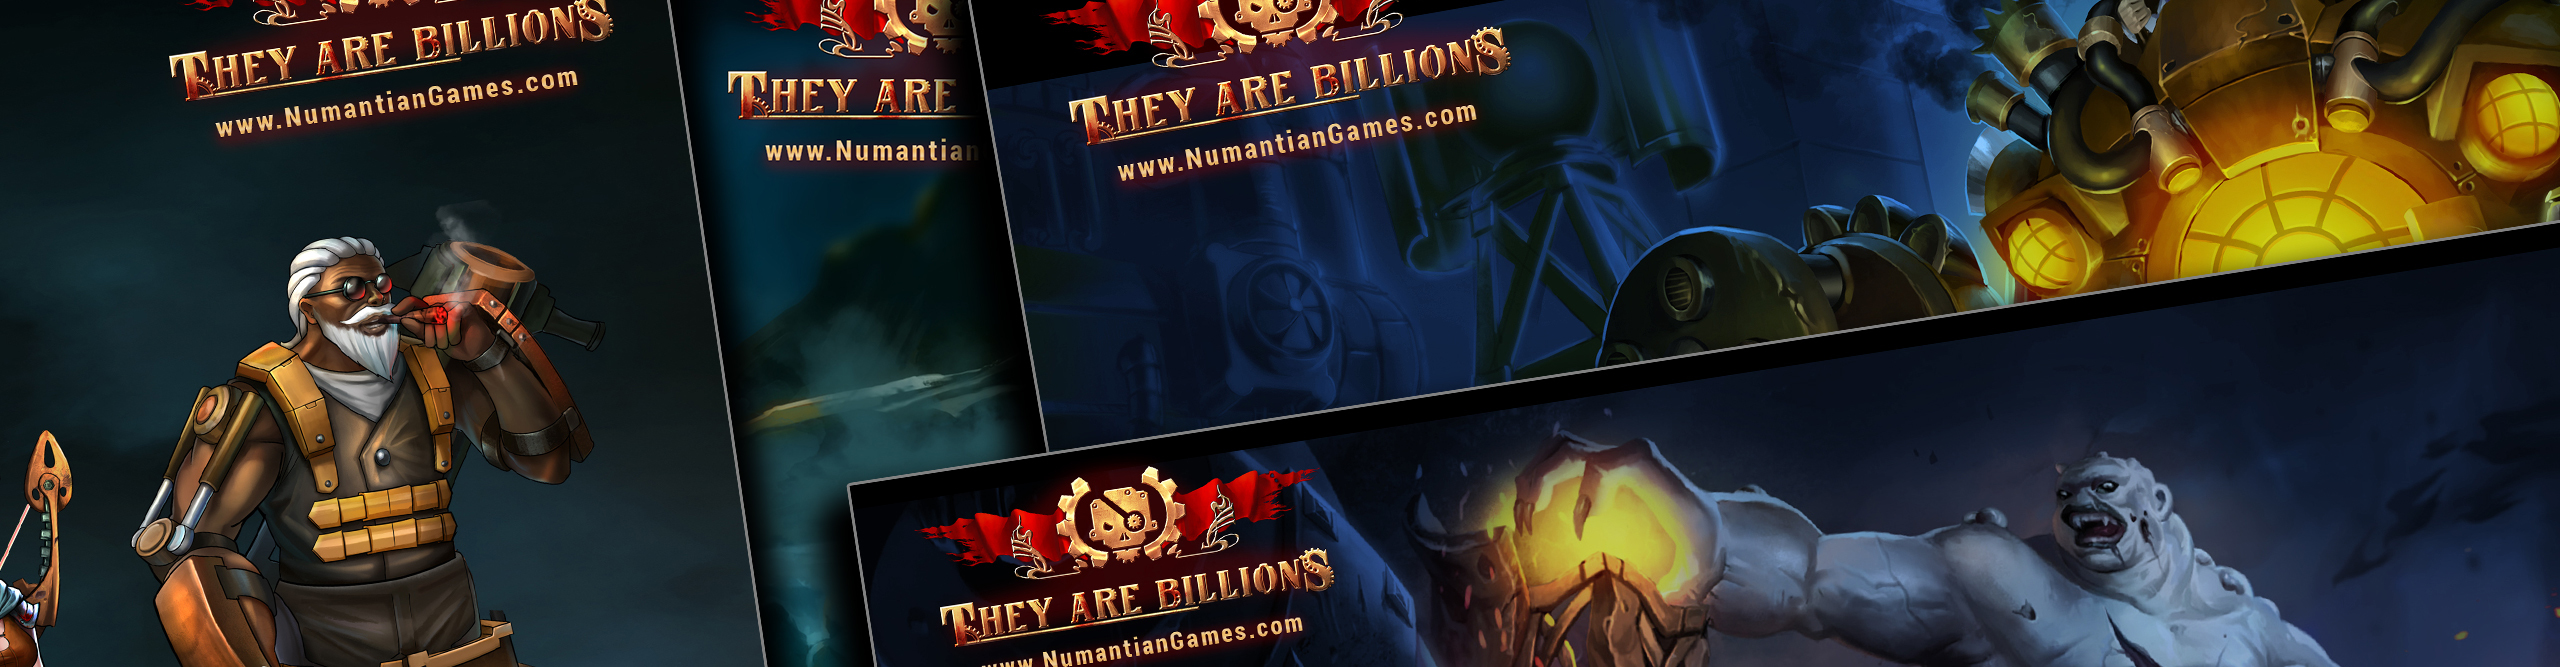 they are billions thanatos